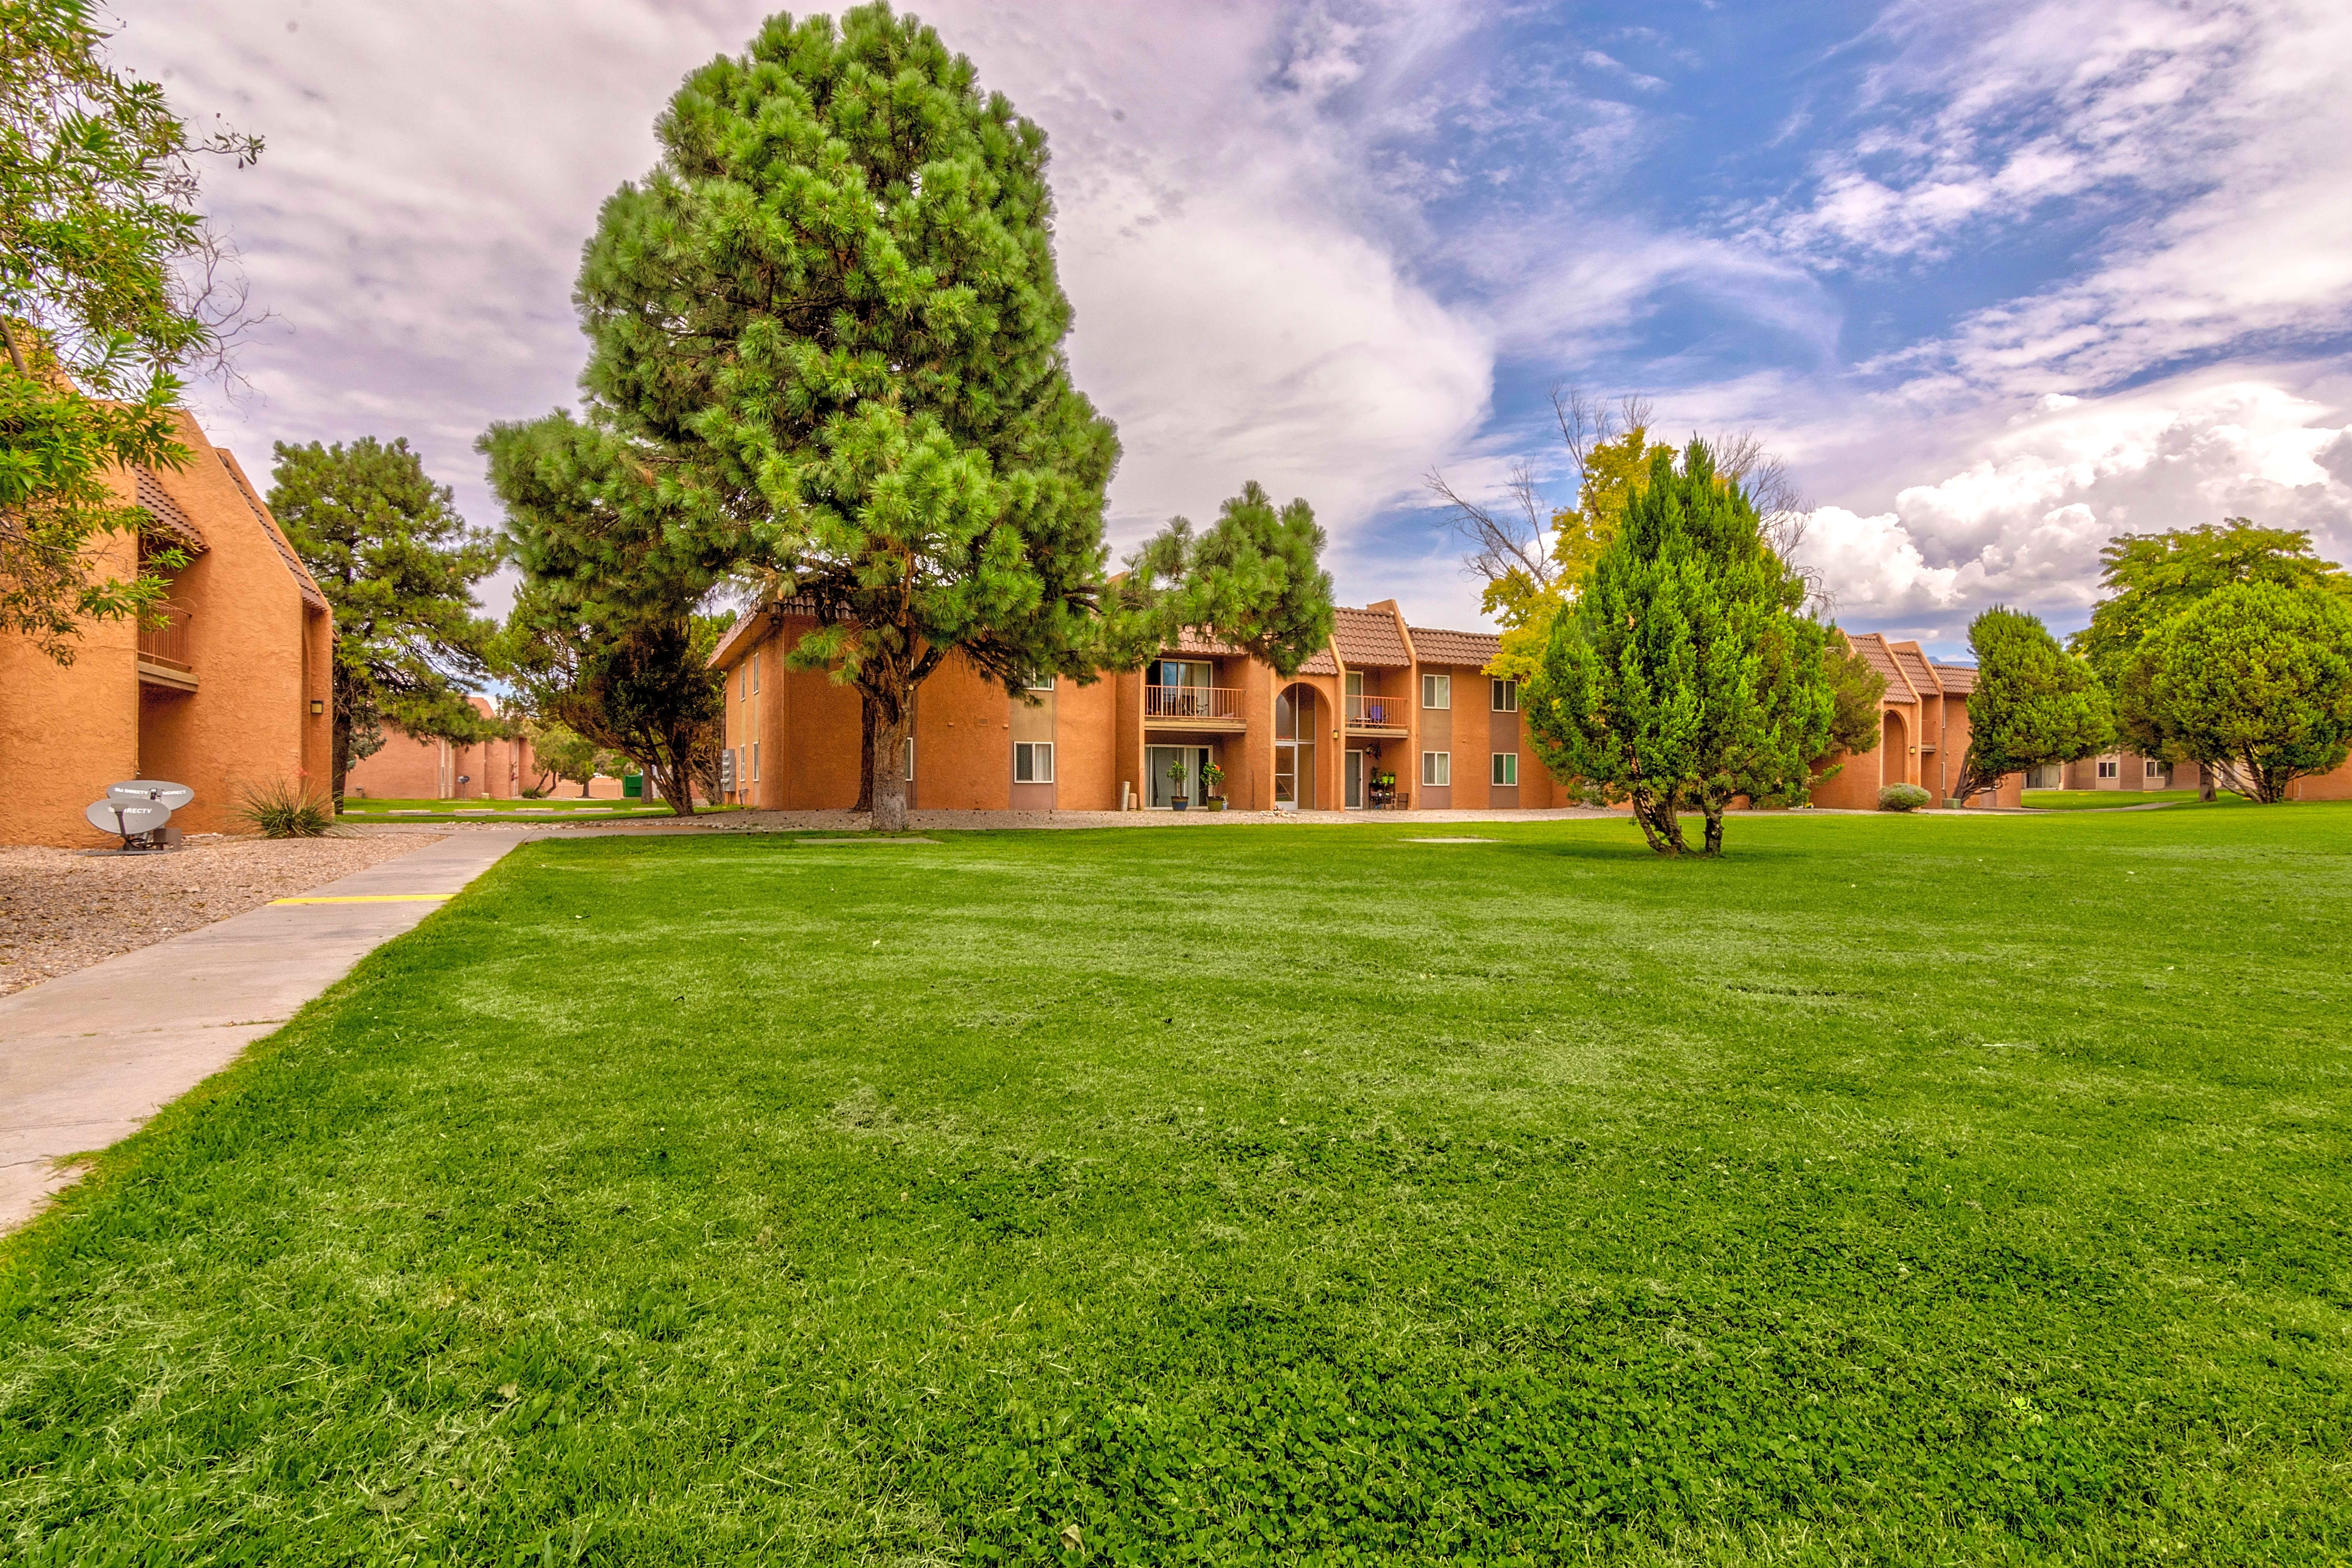 Apartments Near New Mexico Aztec Village for New Mexico Students in , NM